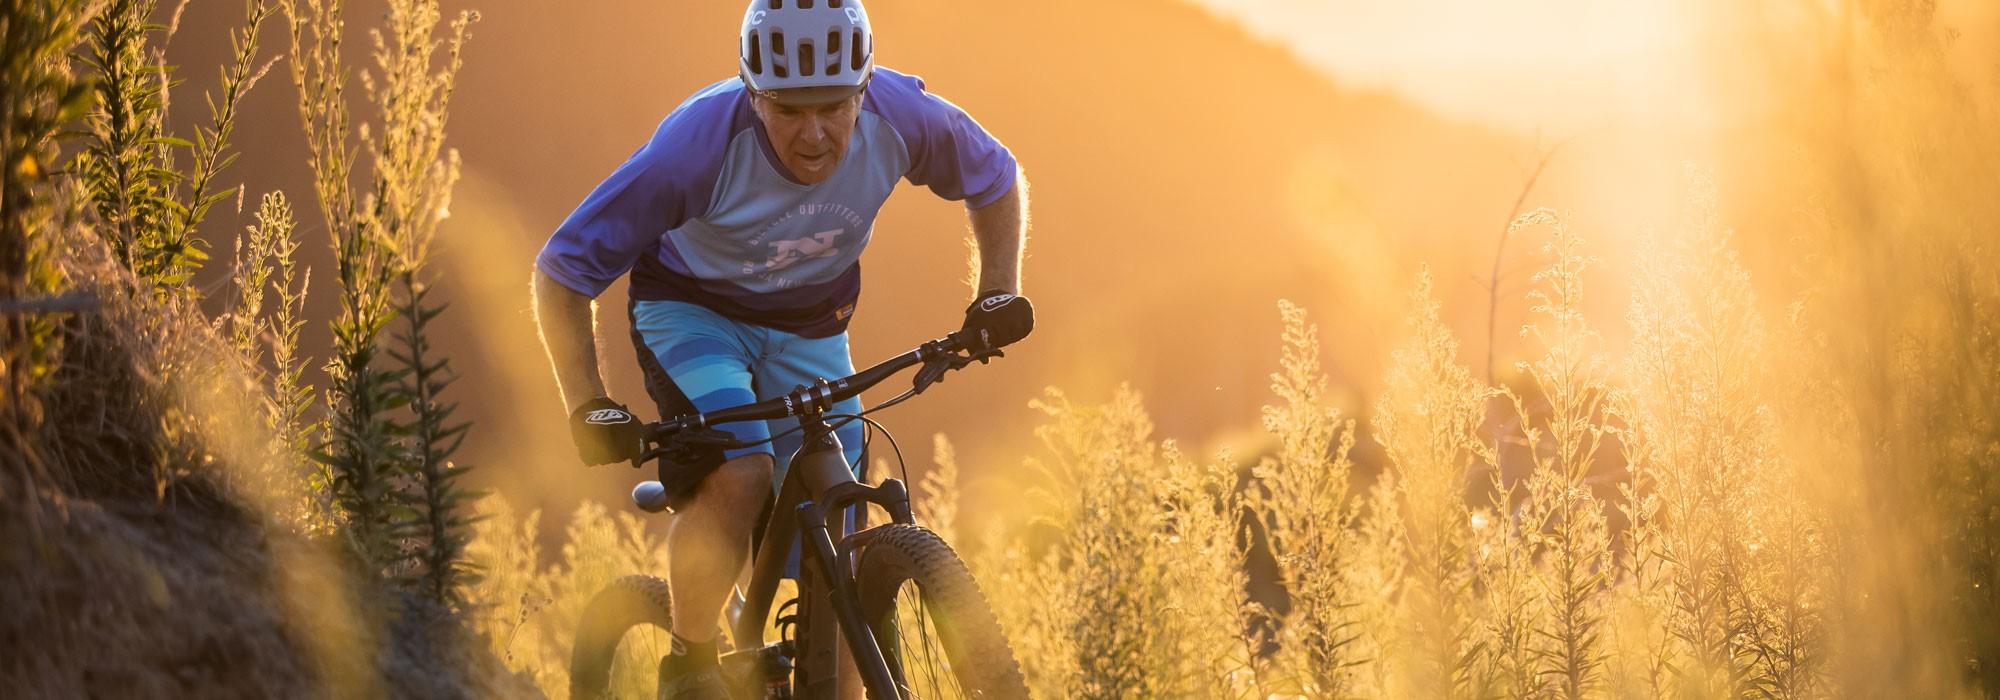 Bike shorts and a pandemic: A lesson in endurance